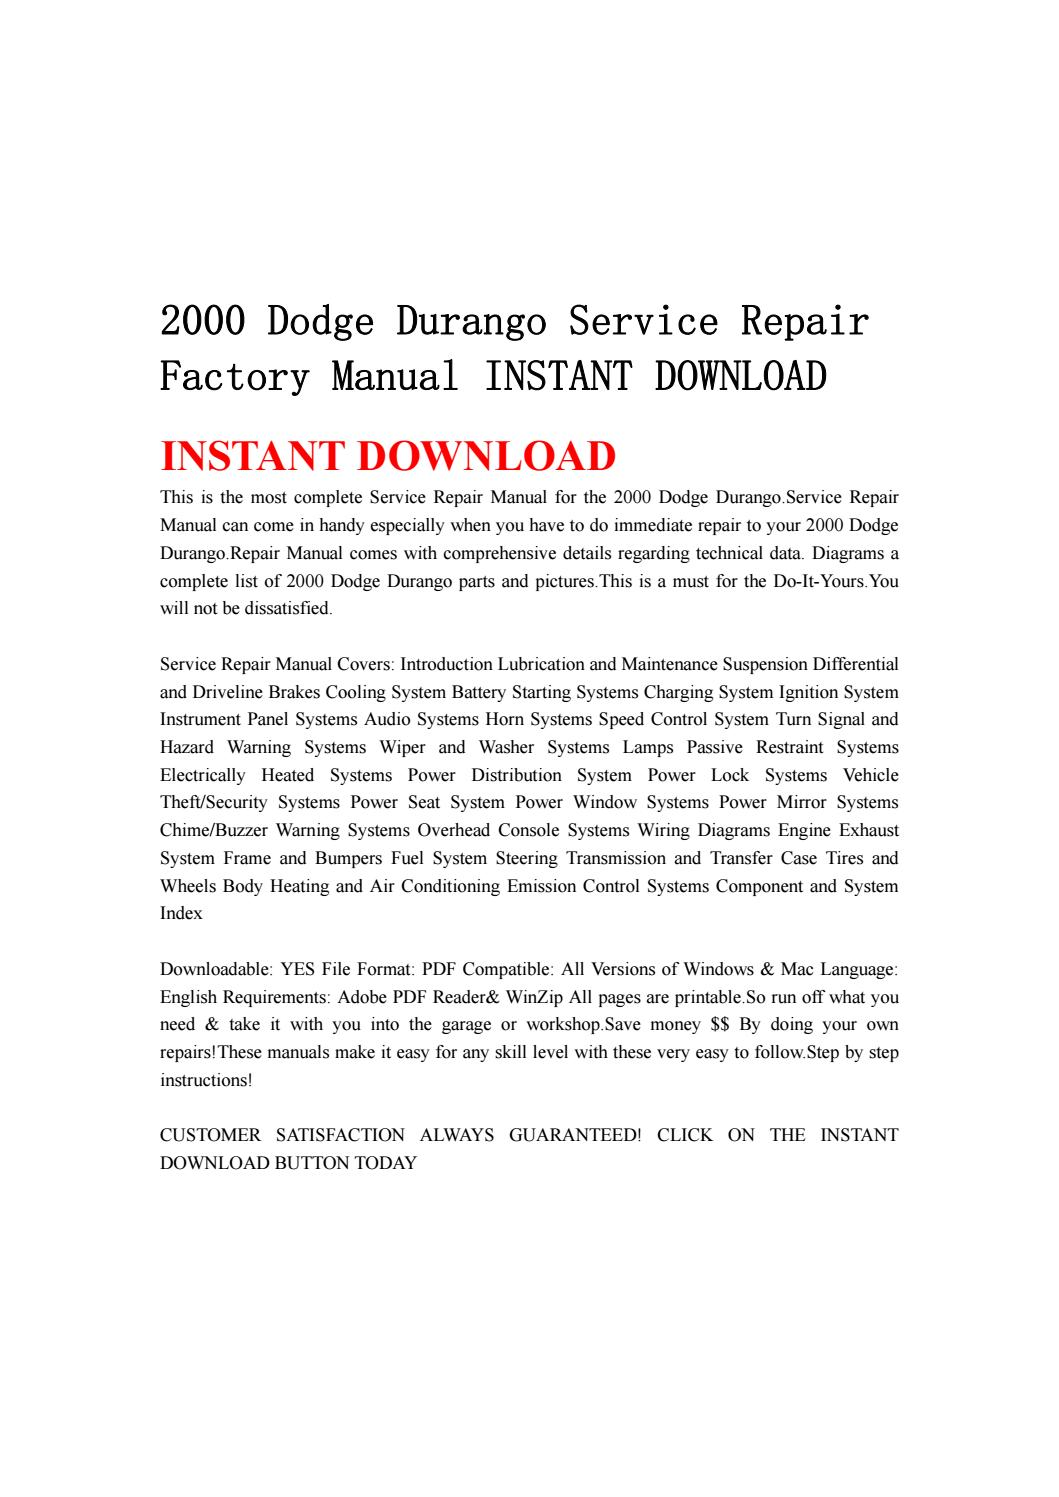 2000 dodge durango service repair factory manual instant download by  ksjefnsenfn - issuu